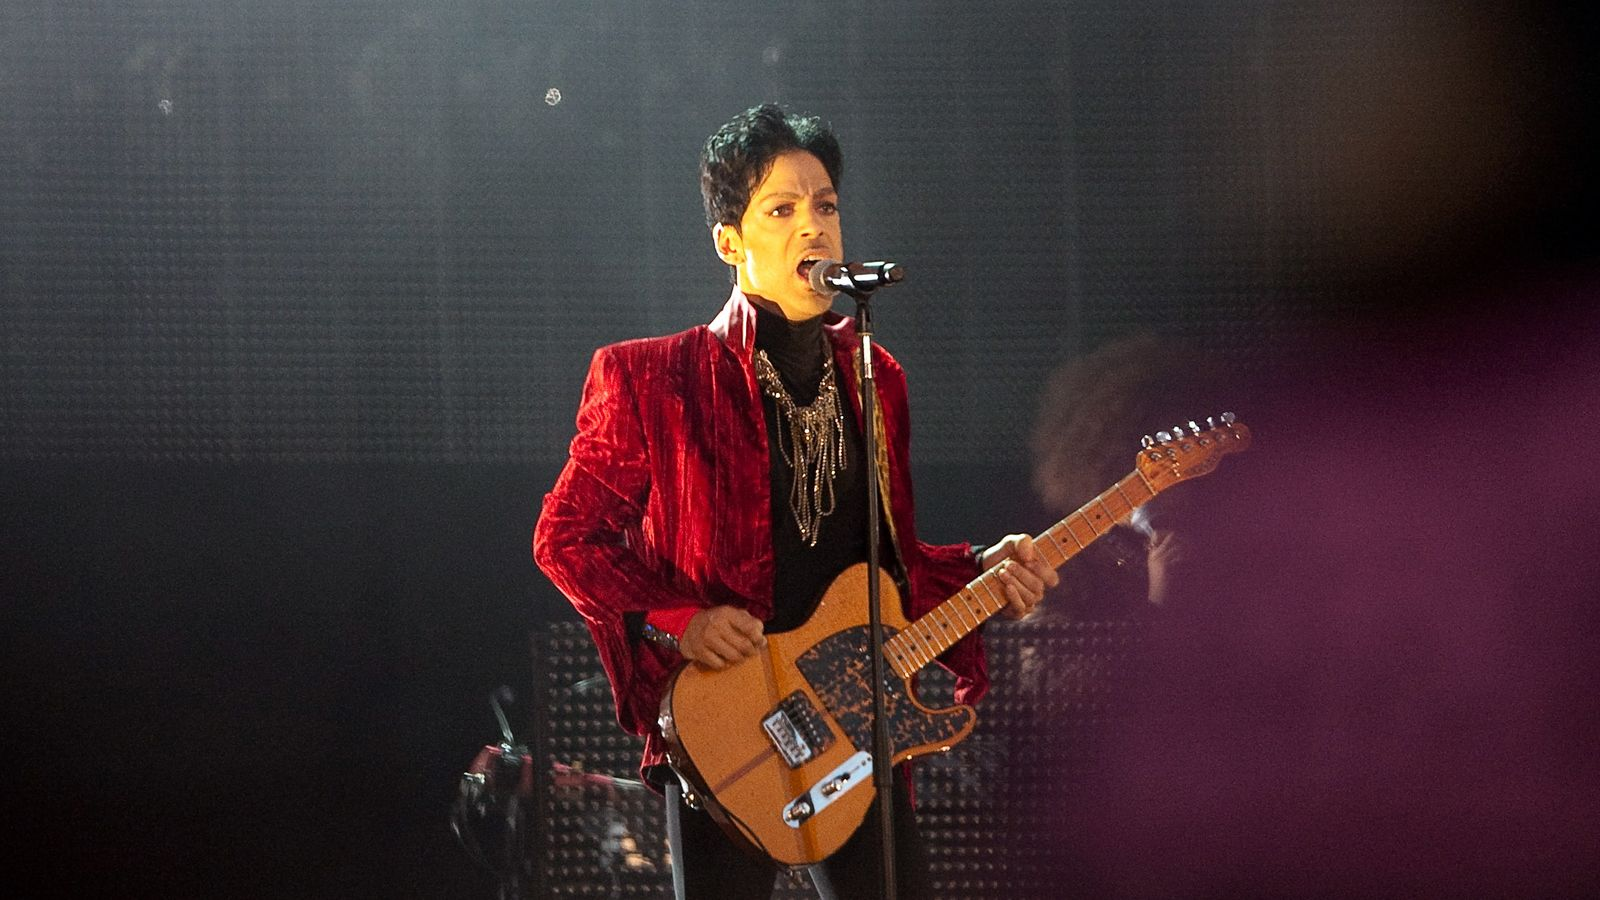 'Raw, intimate' new Prince album to be released